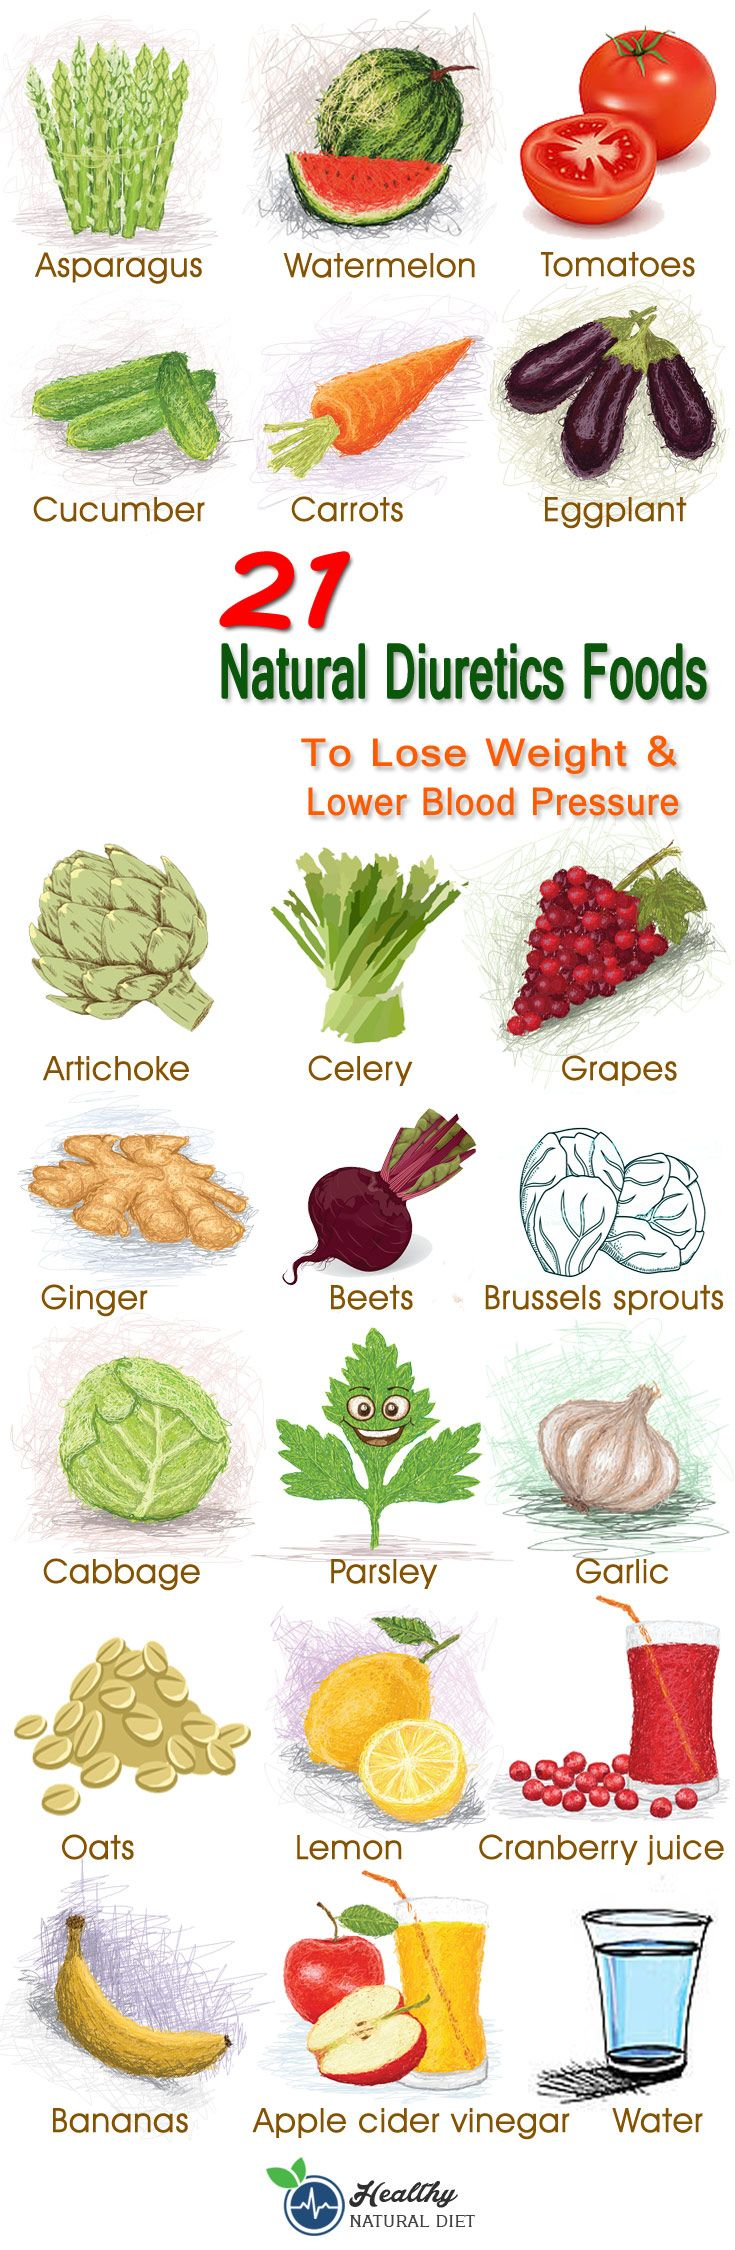 21 natural diuretics foods to lose weight and lower blood pressure 21 natural diuretics foods fandeluxe Gallery